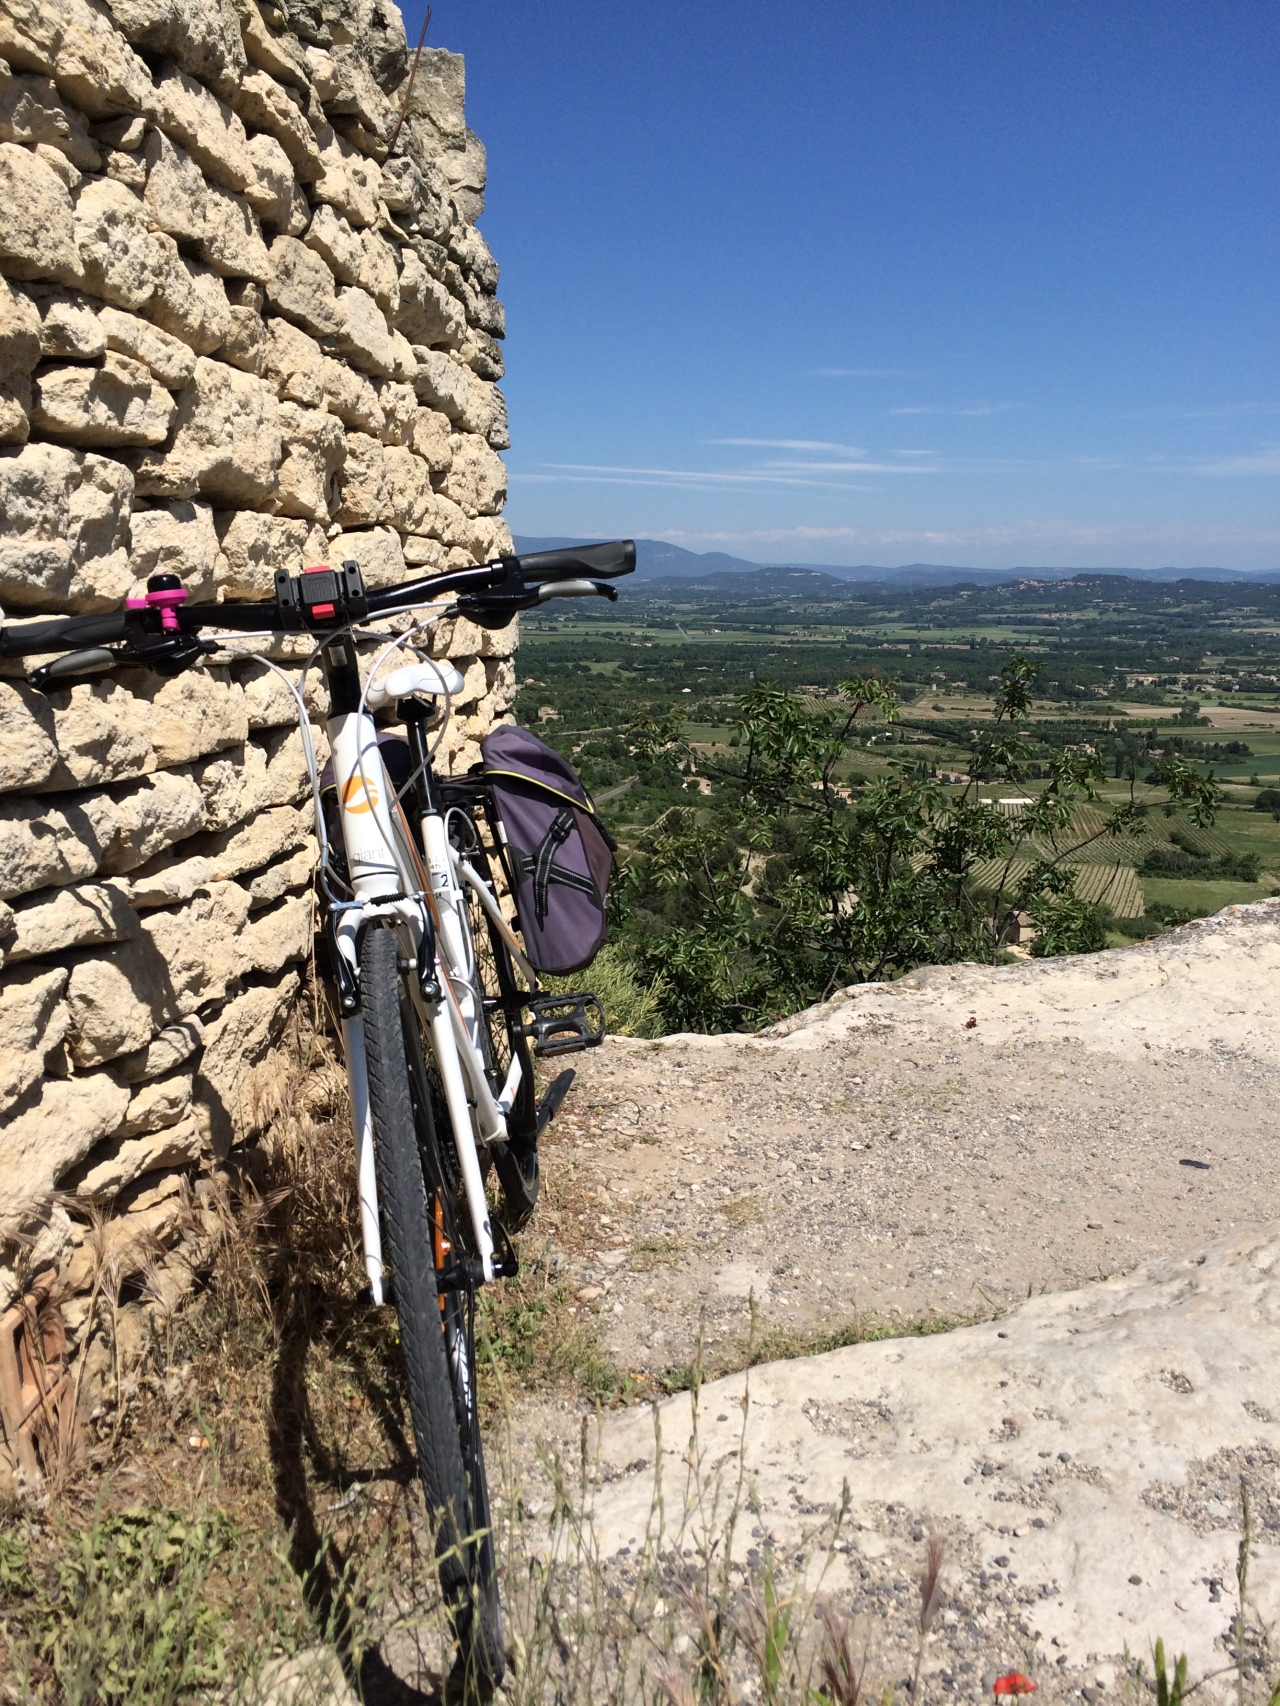 Two weeks in Provence – Day 2 – Up with the lark and a day on thebike